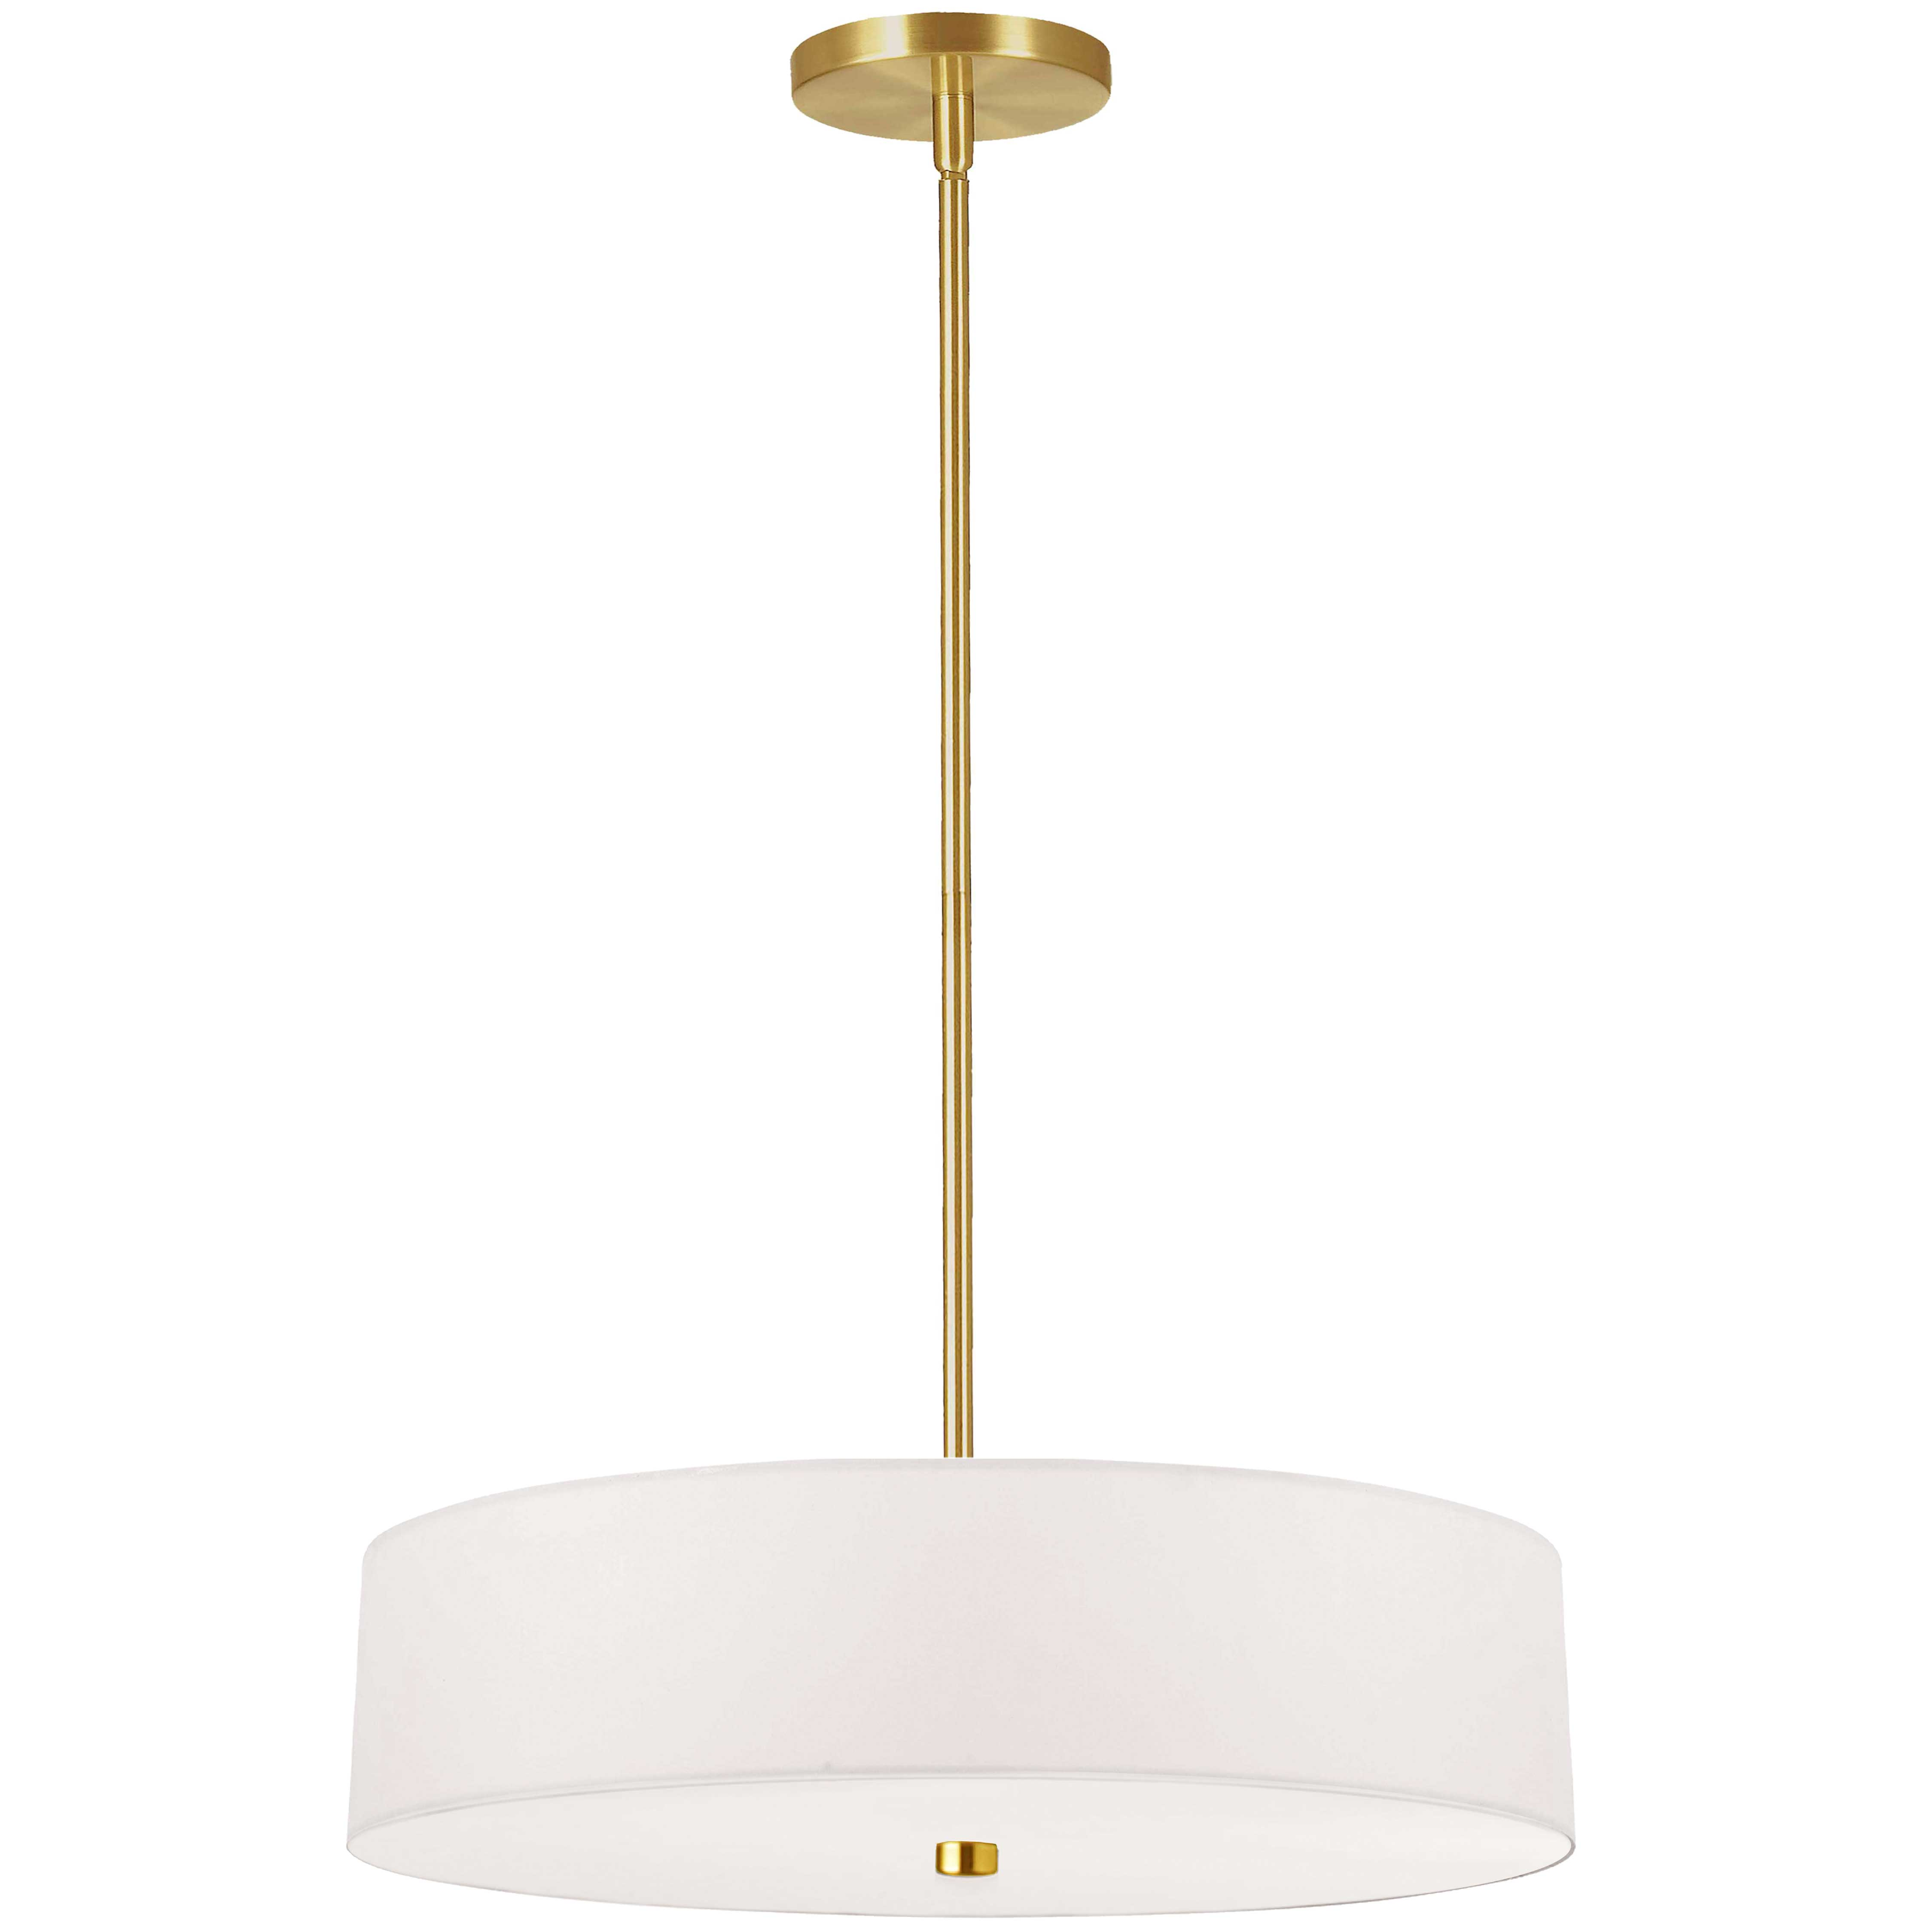 4 Light Incandescent Pendant Aged Brass with White Shade